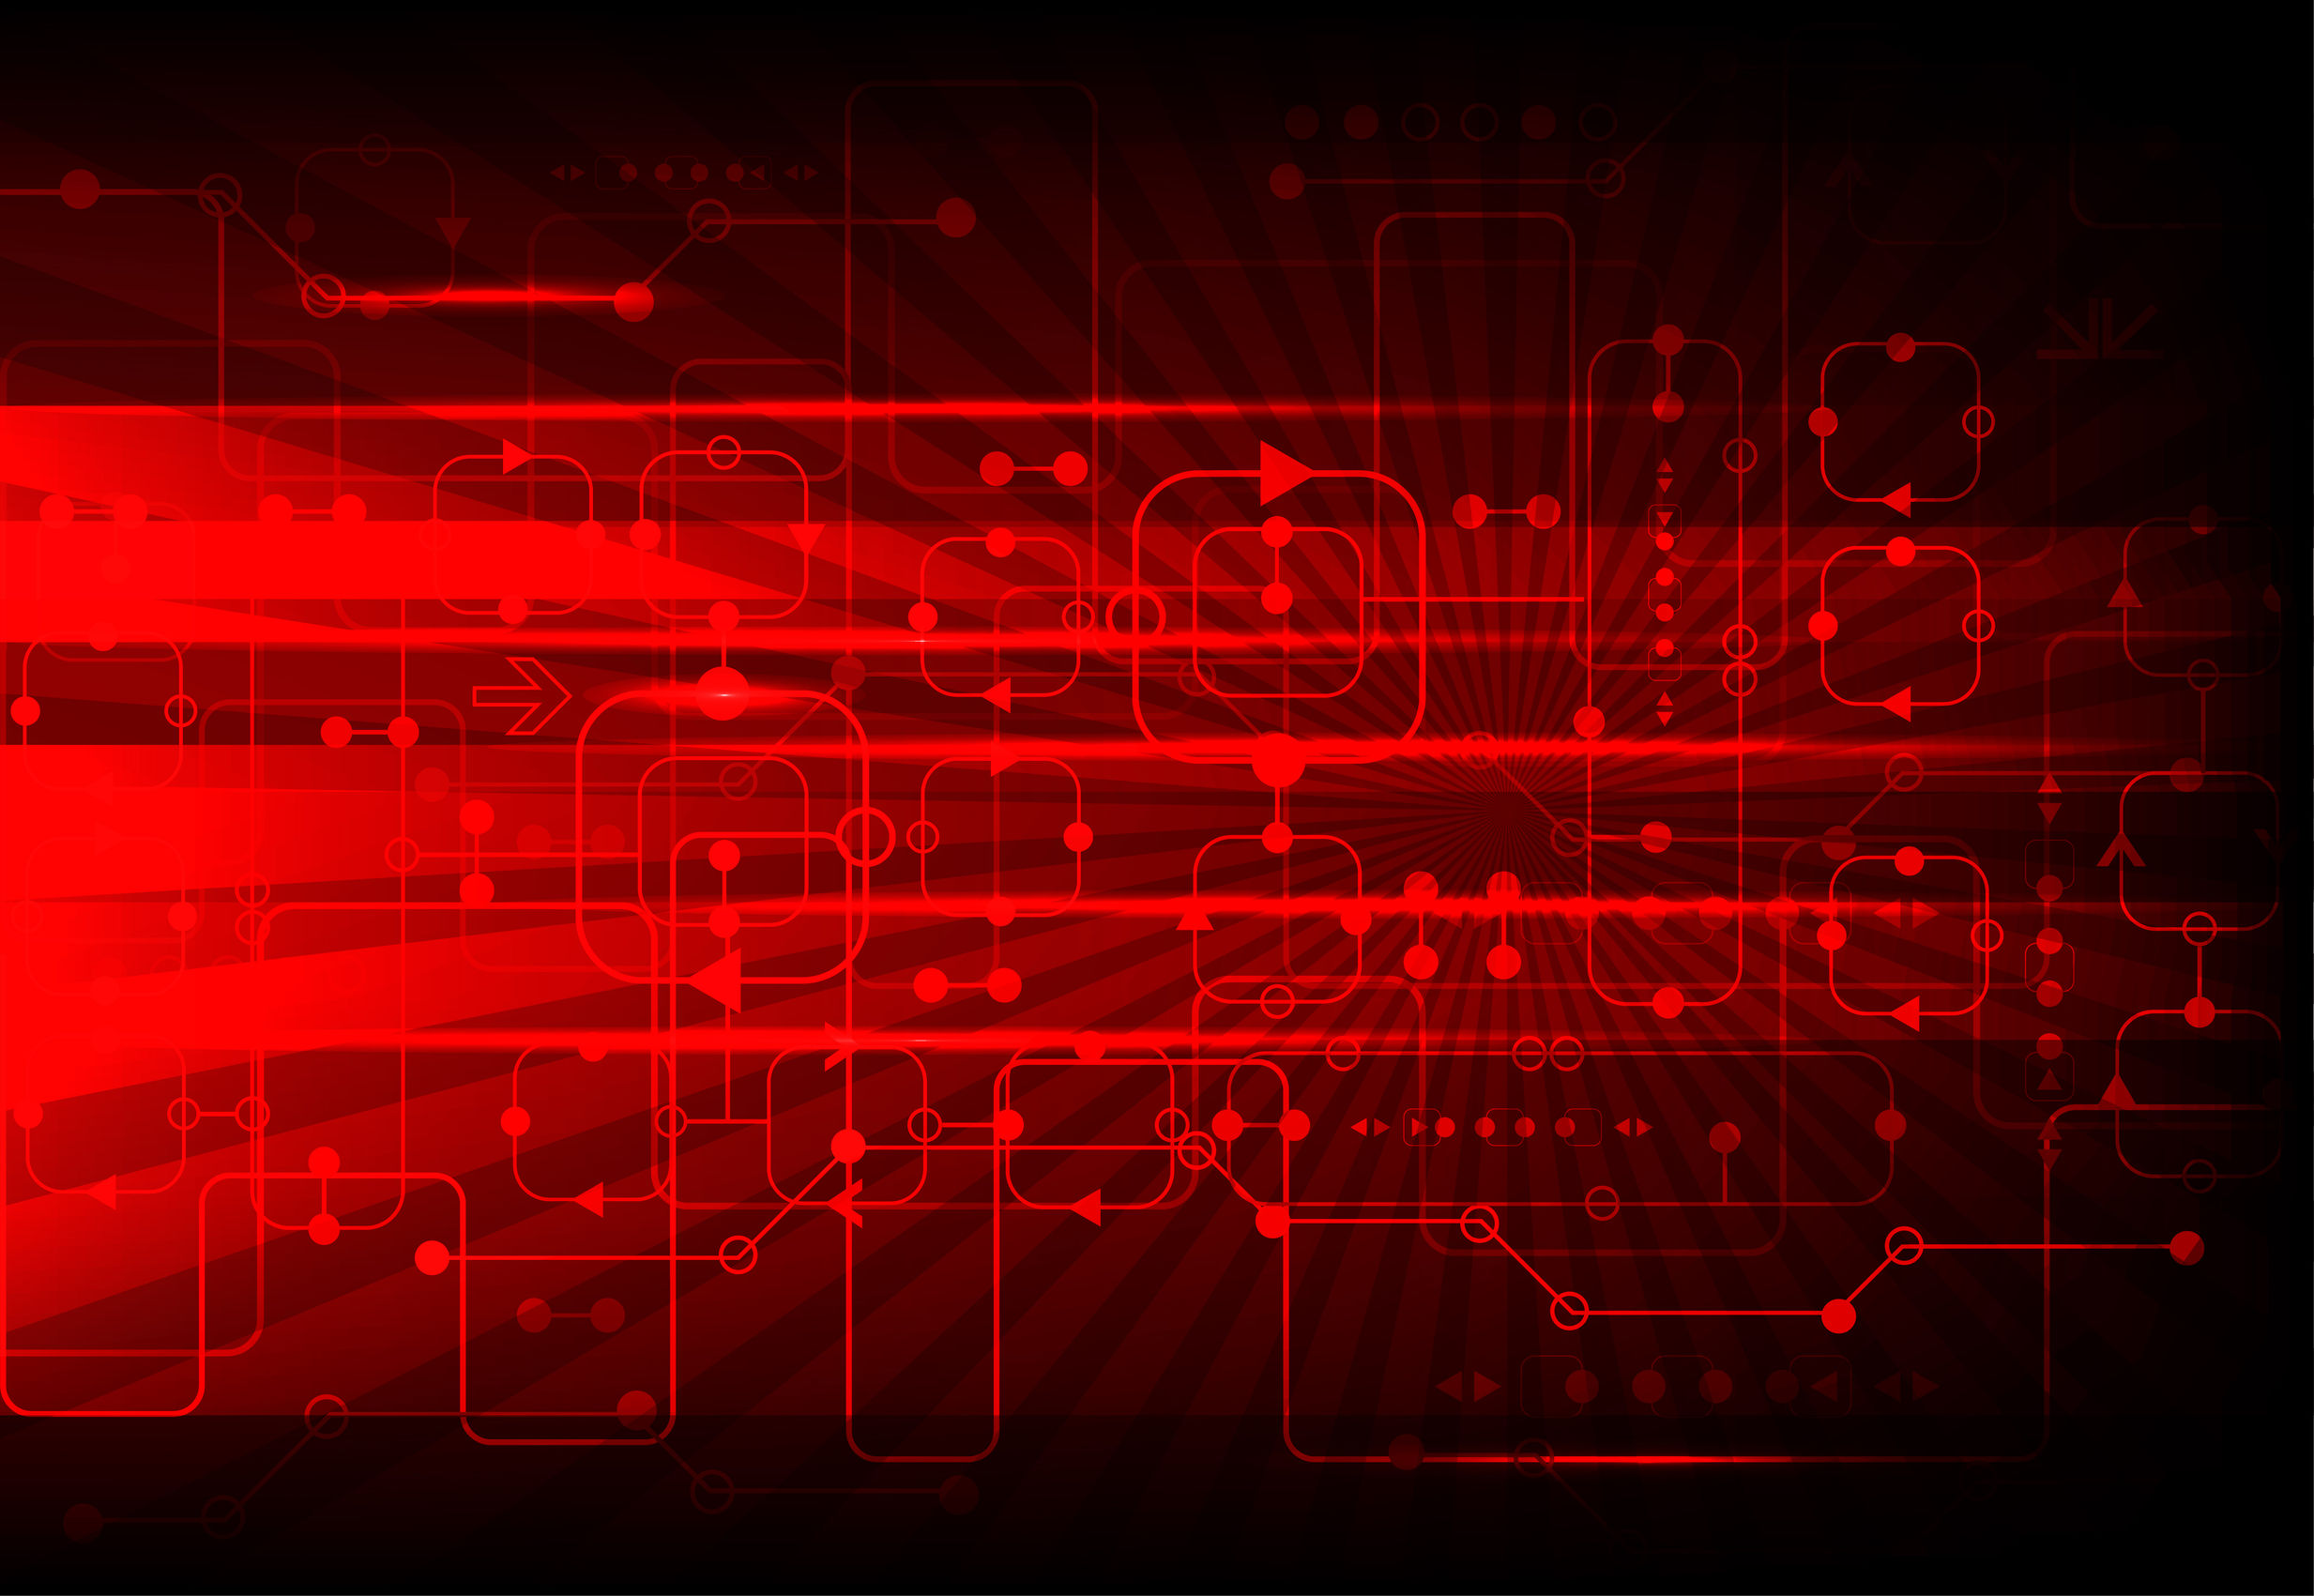 41696842-Red-abstract-technological-background-with-various-technological-elements-Stock-Vector.jpg